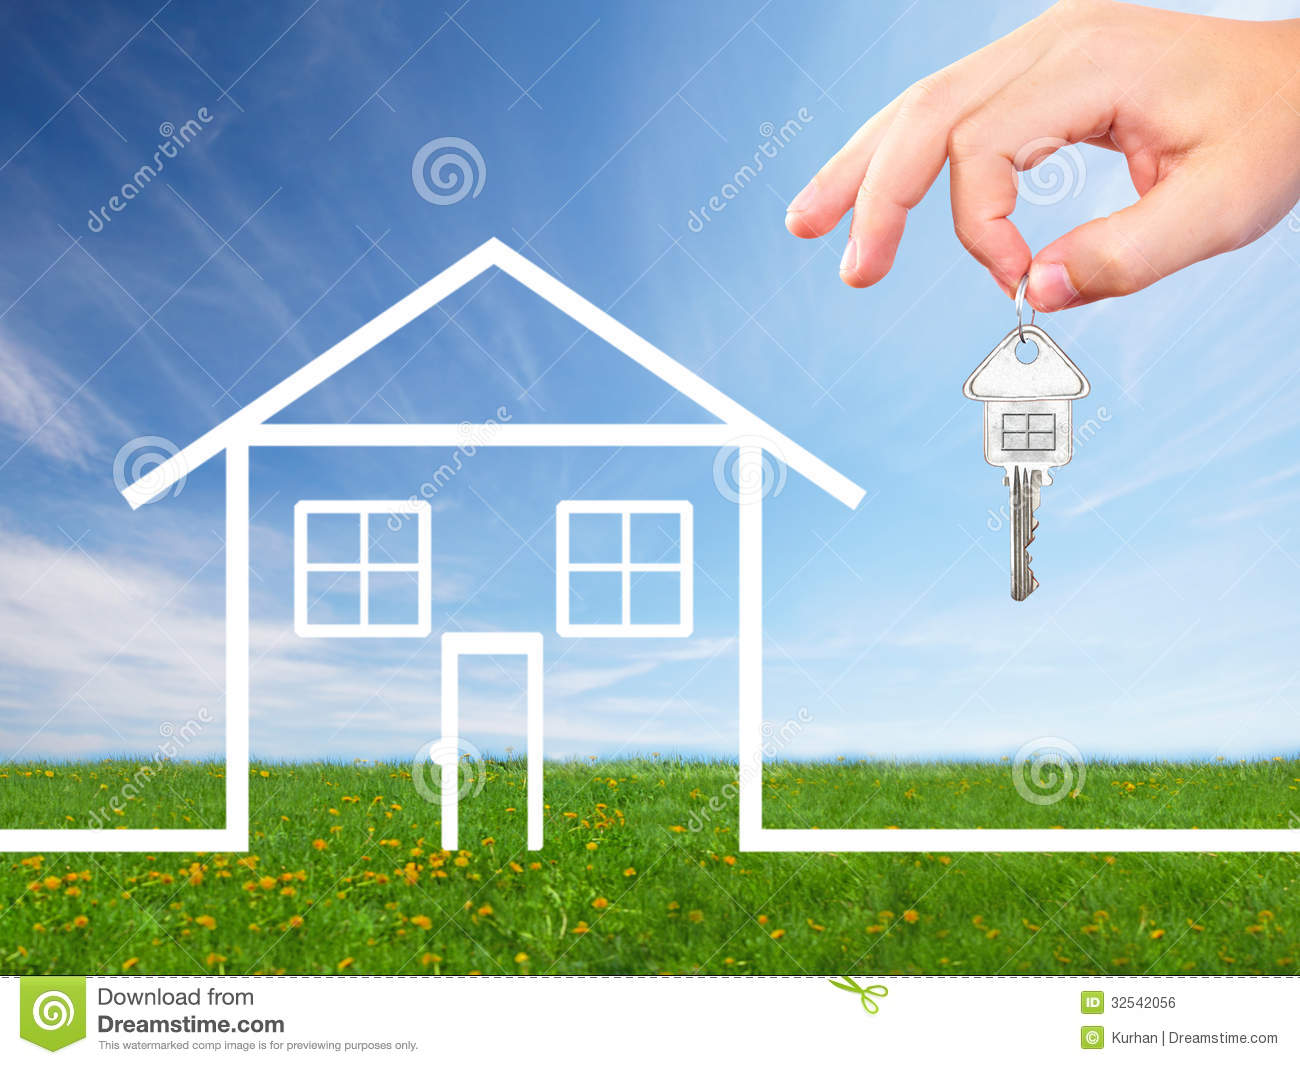 Hand with a house key royalty free stock image image for New home images free